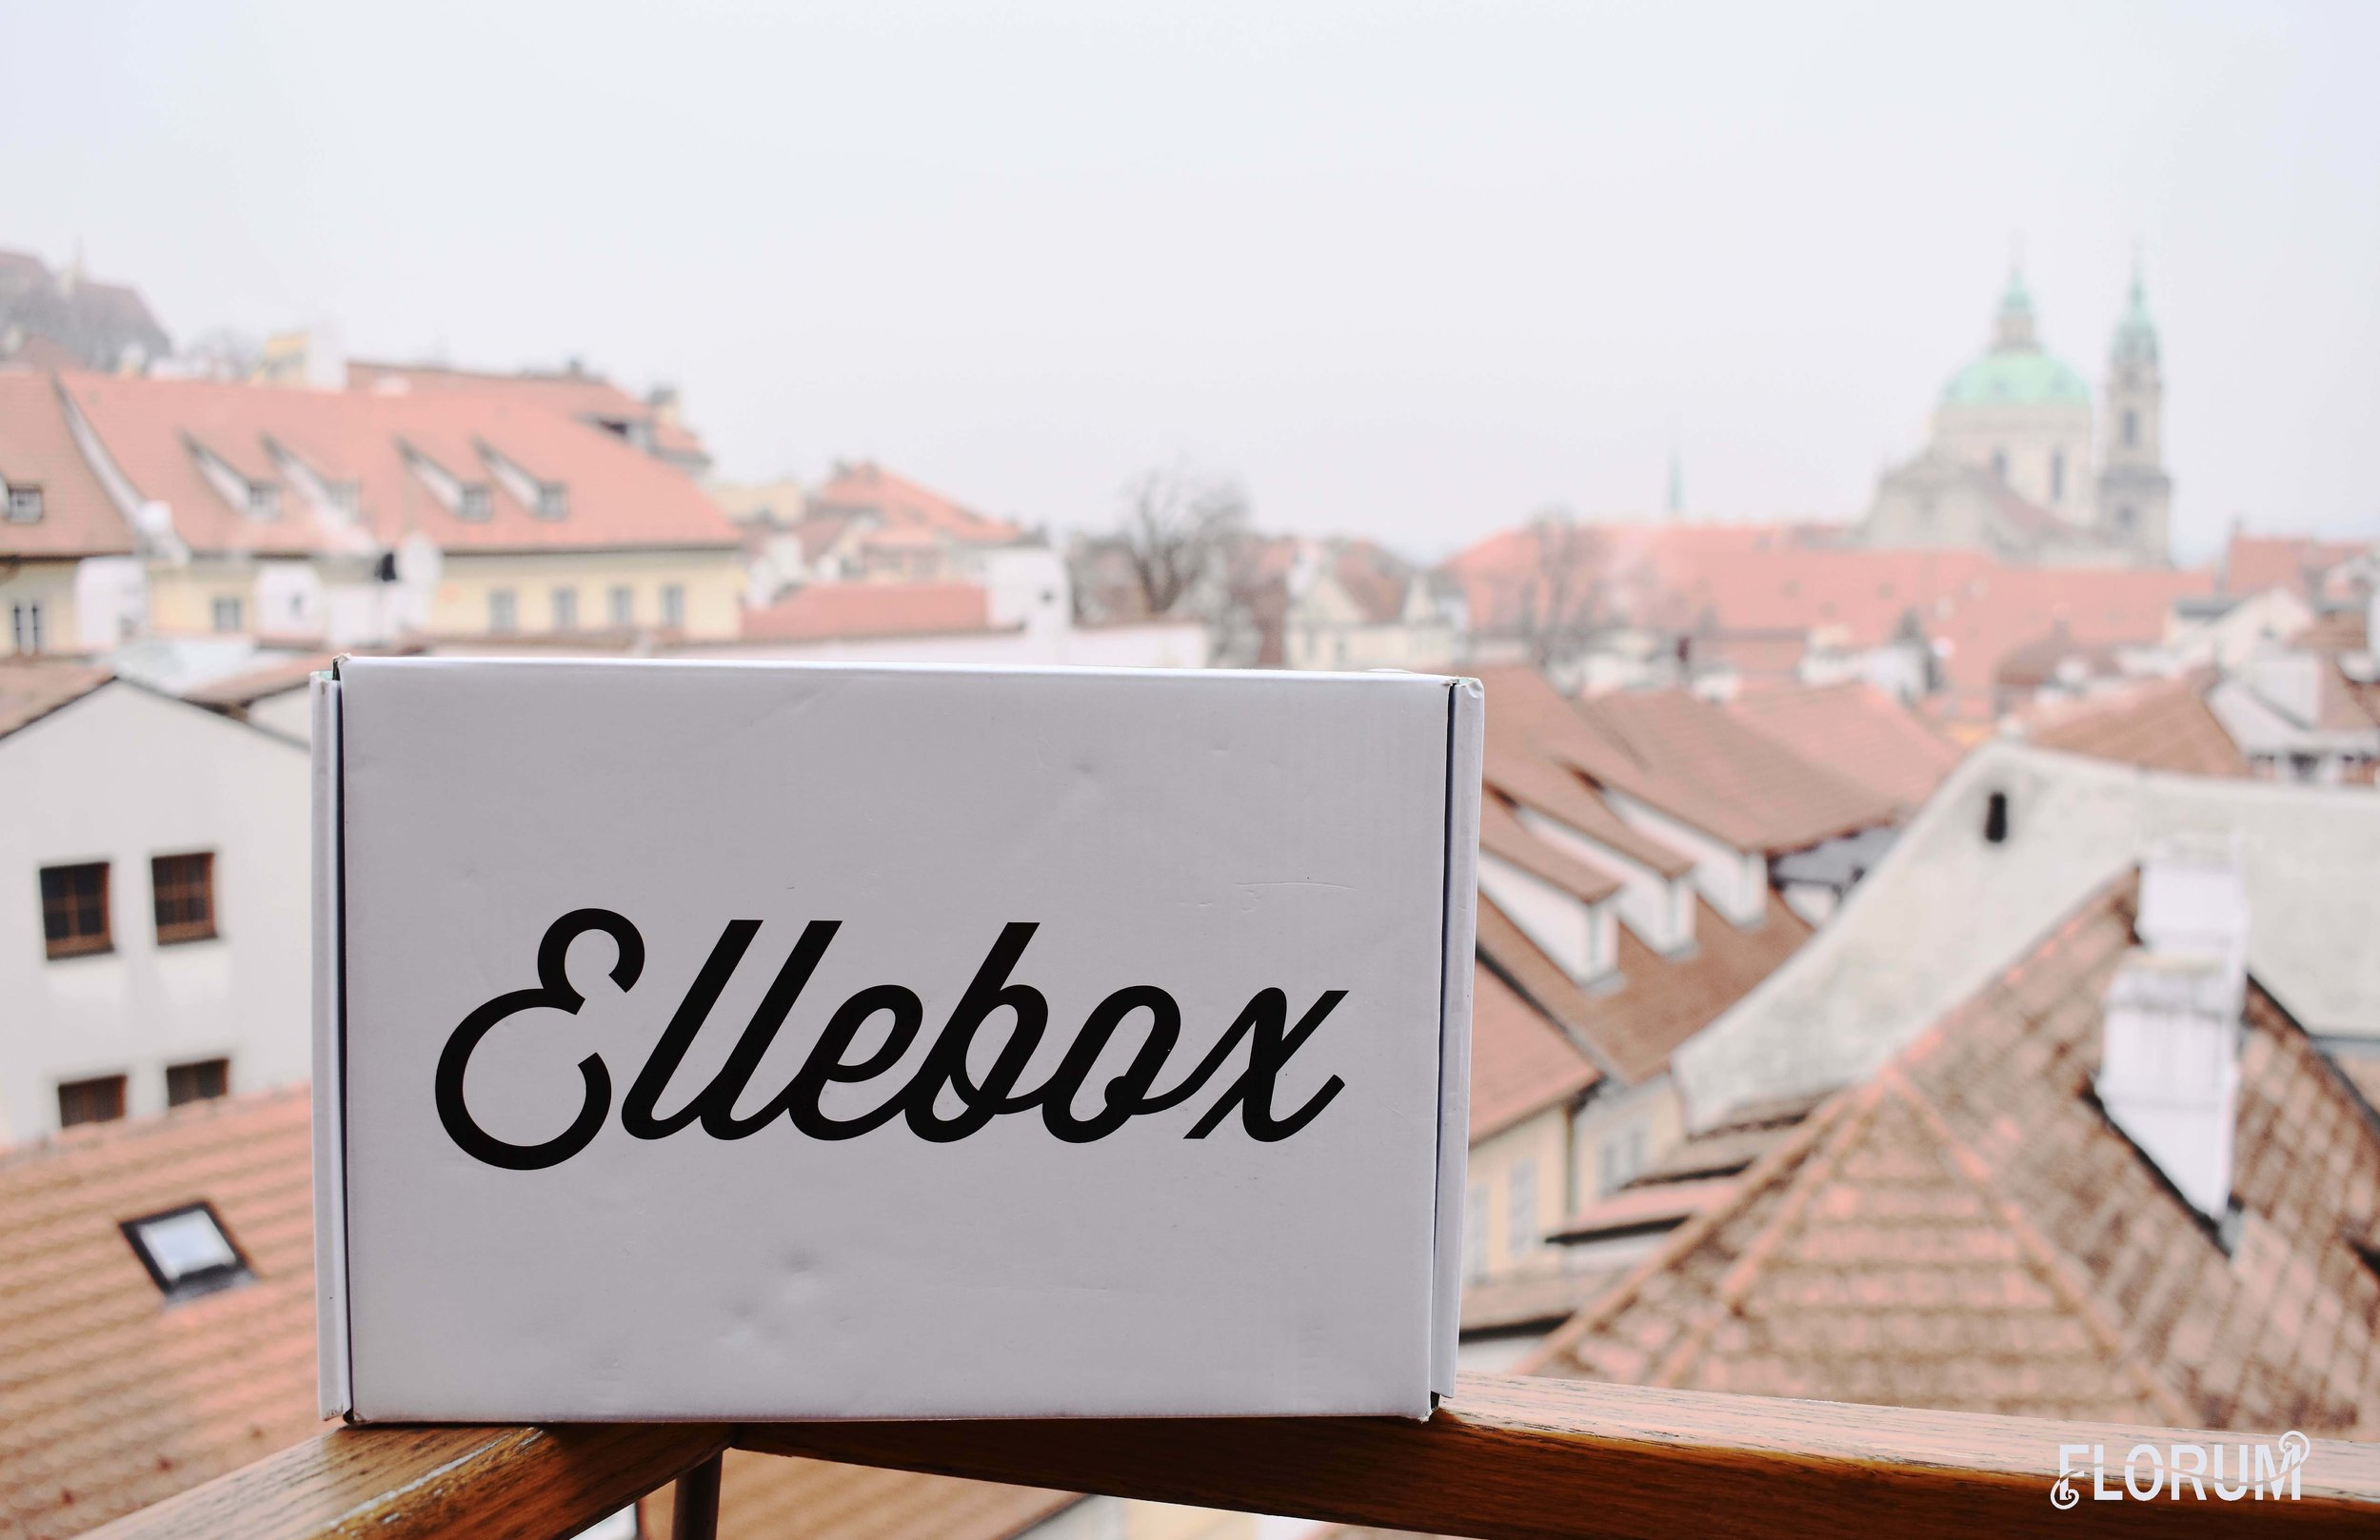 Ellebox - organic tampons - natural - in time for your time - natural sustainable eco travel - the comfort box - florum fashion magazine - noelle lynne